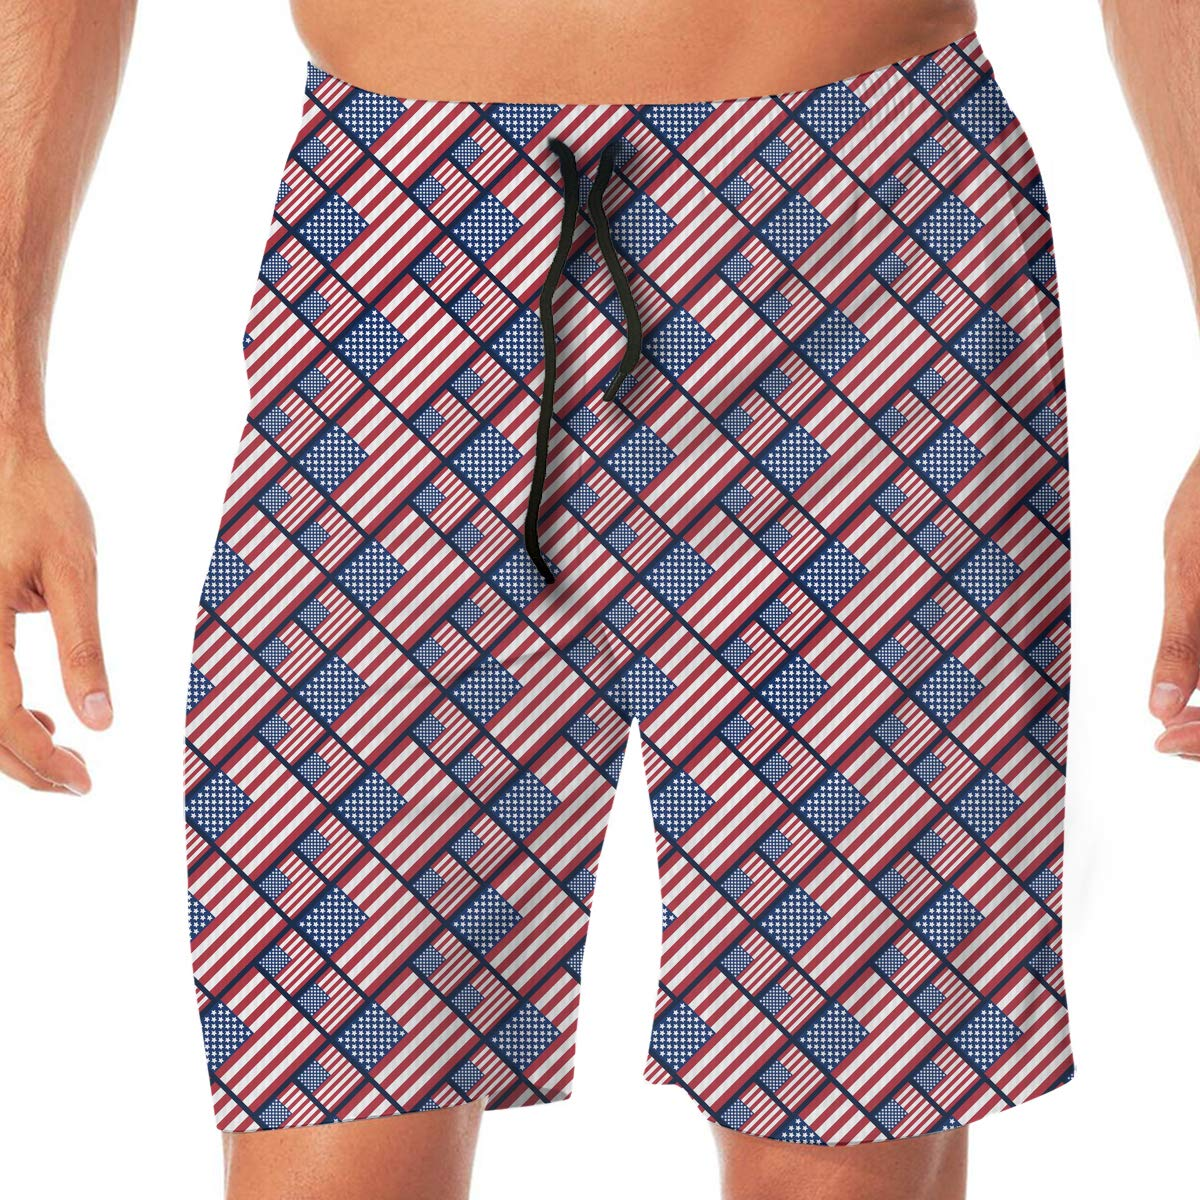 YGE.I.L25 Mens Bathing Suit USA Flags Pattern Summer Vacation Beach Board Short Adults Boys